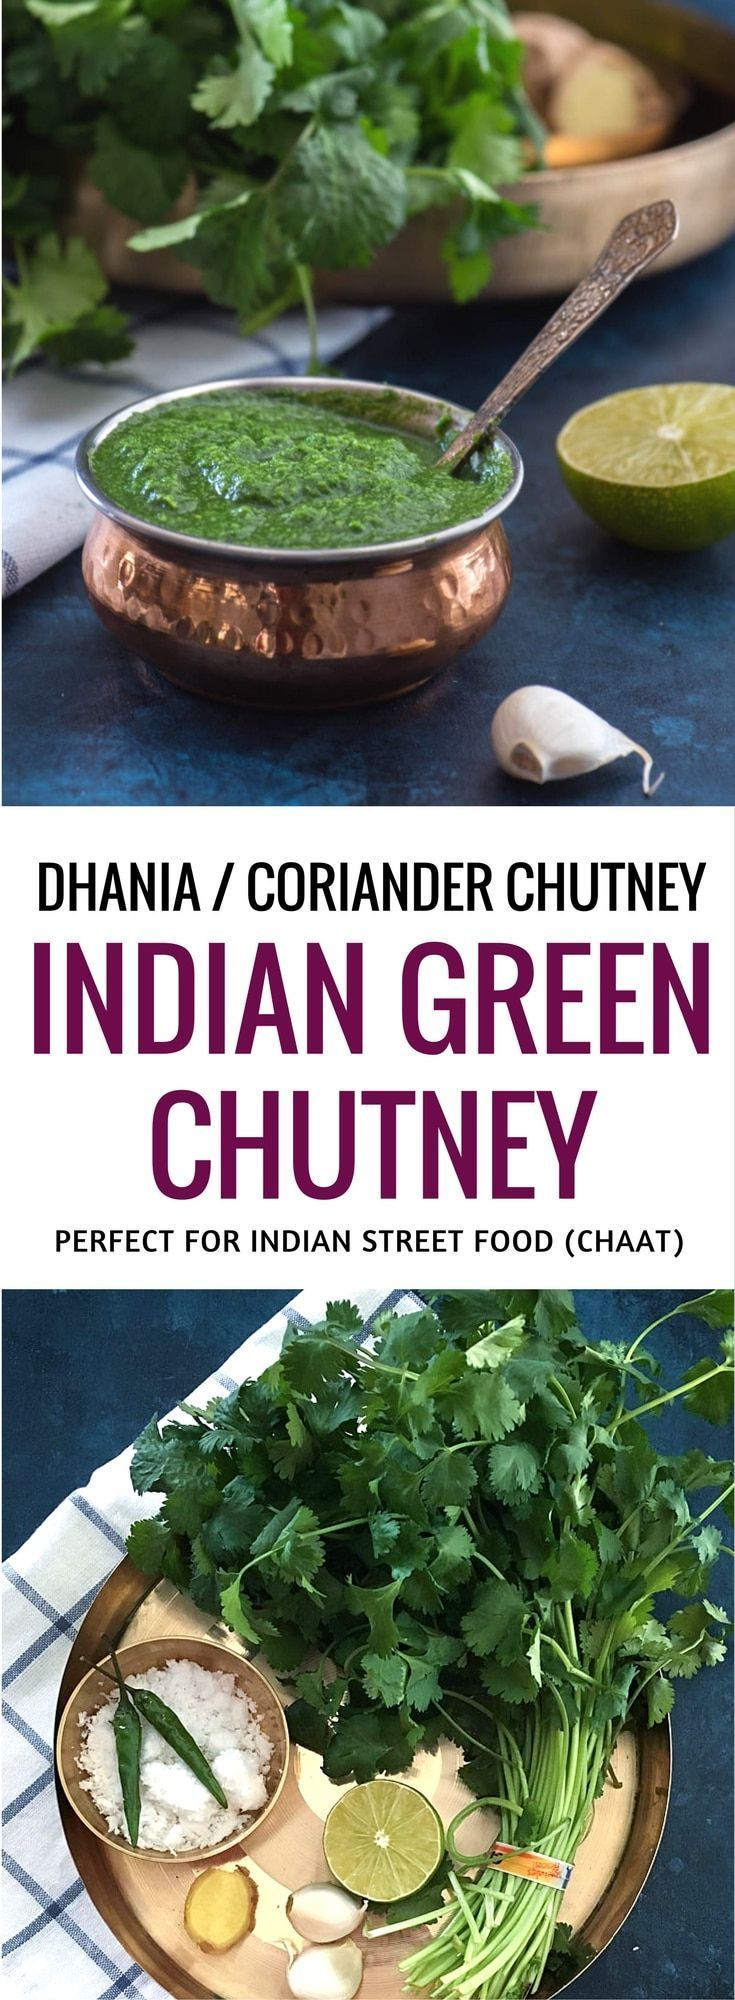 Indian Green Chutney | Posted By: DebbieNet.com